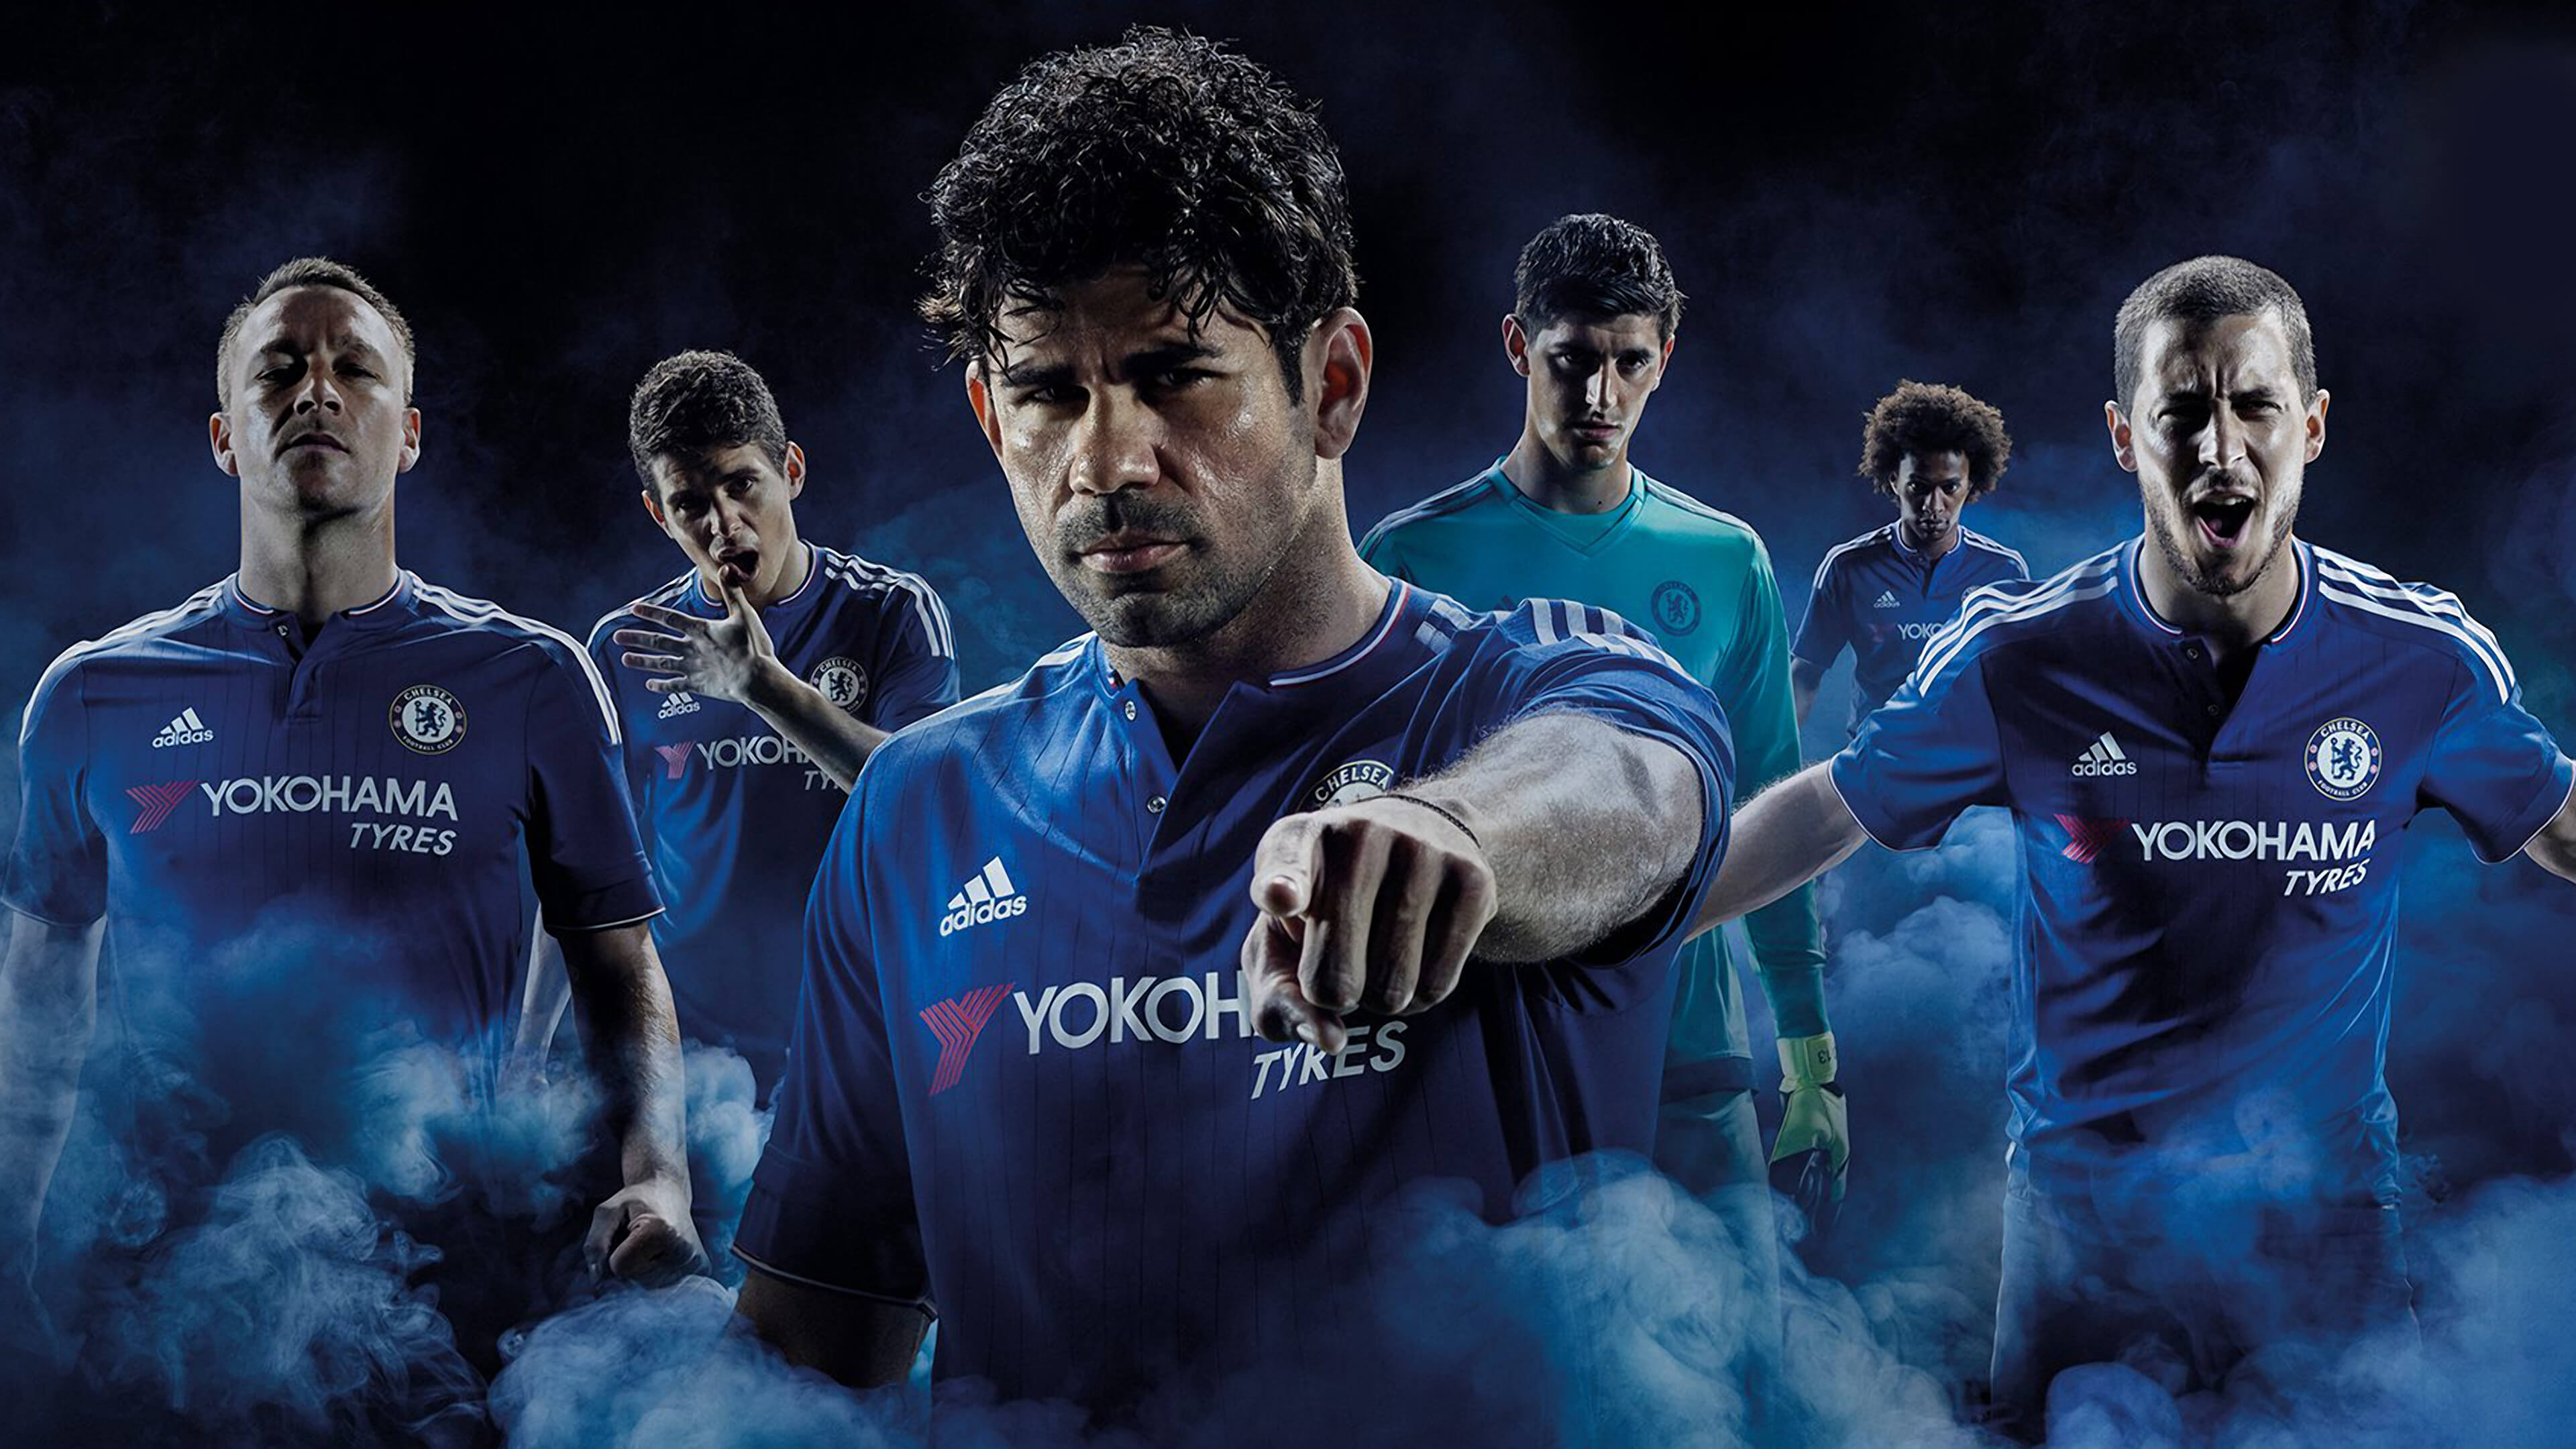 Chelsea-FC-2015-2016-Adidas-Home-kit-4K-Wallpaper